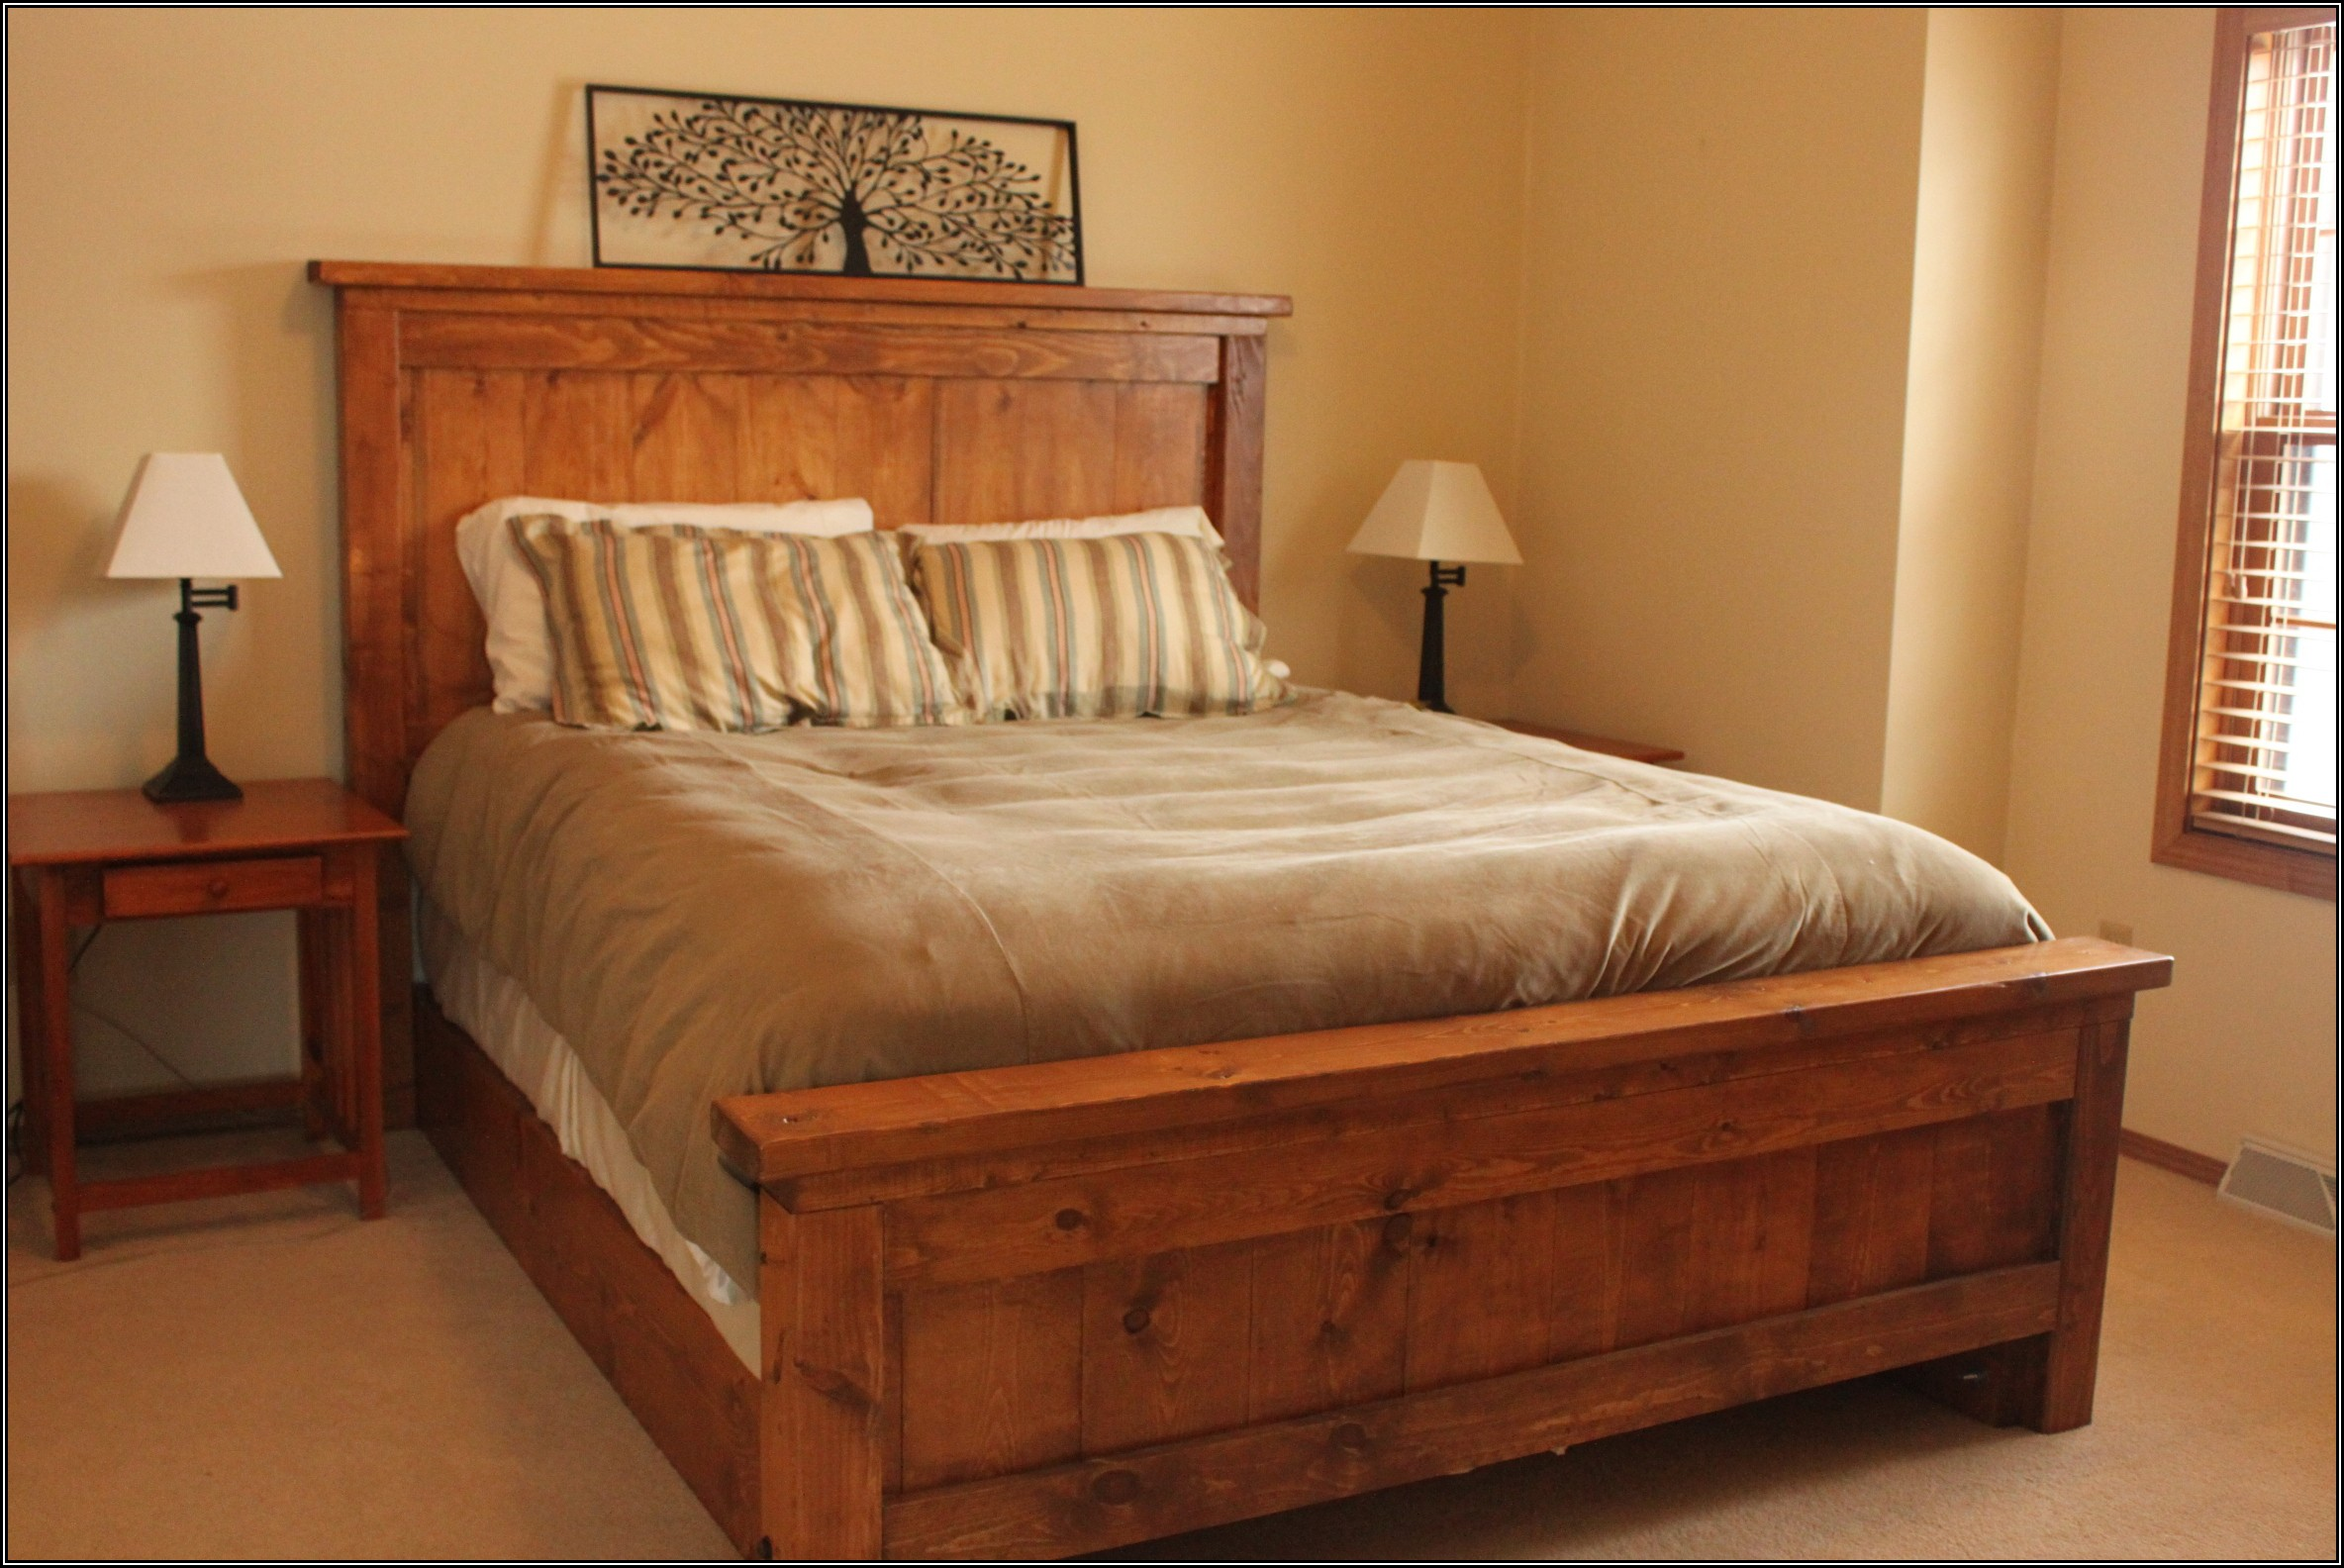 full size wooden bed frame with headboard modern rustic bed frame idea with high headboard rustic bedside BJCAWIM